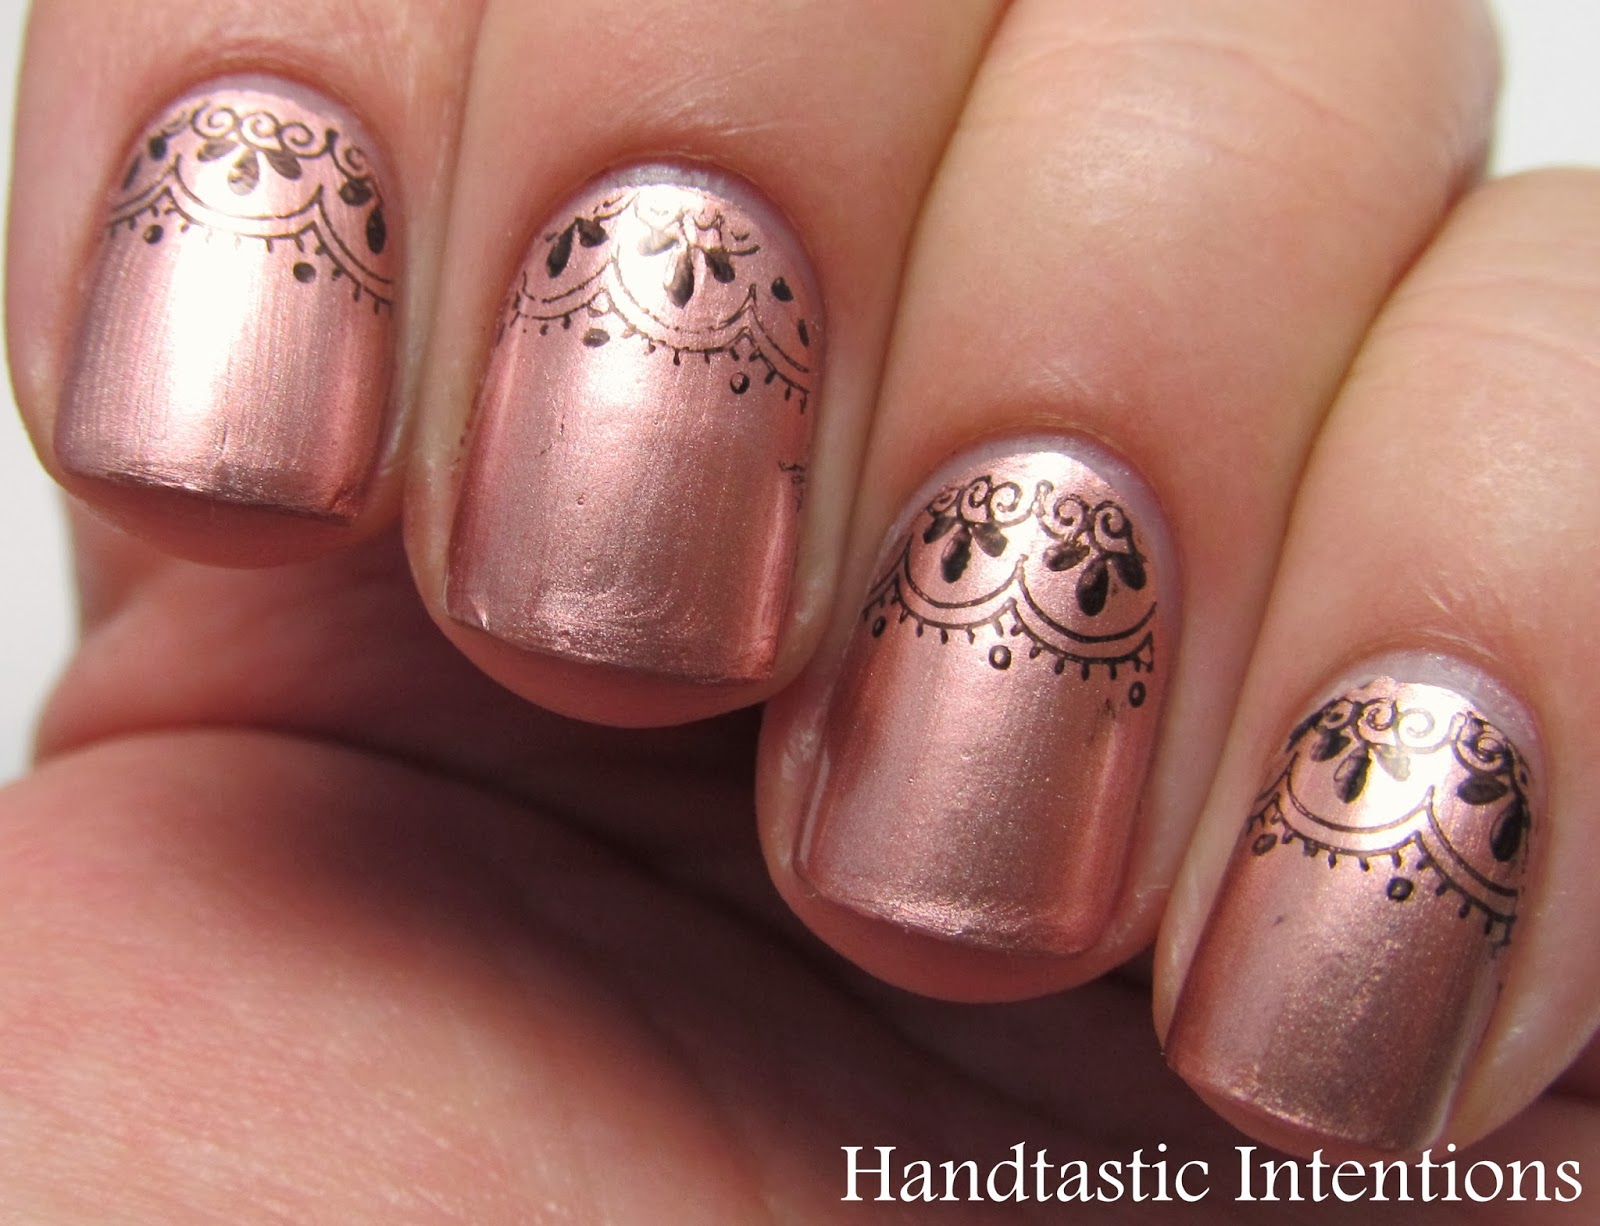 Handtastic Intentions Nail Art Rose Gold Lace